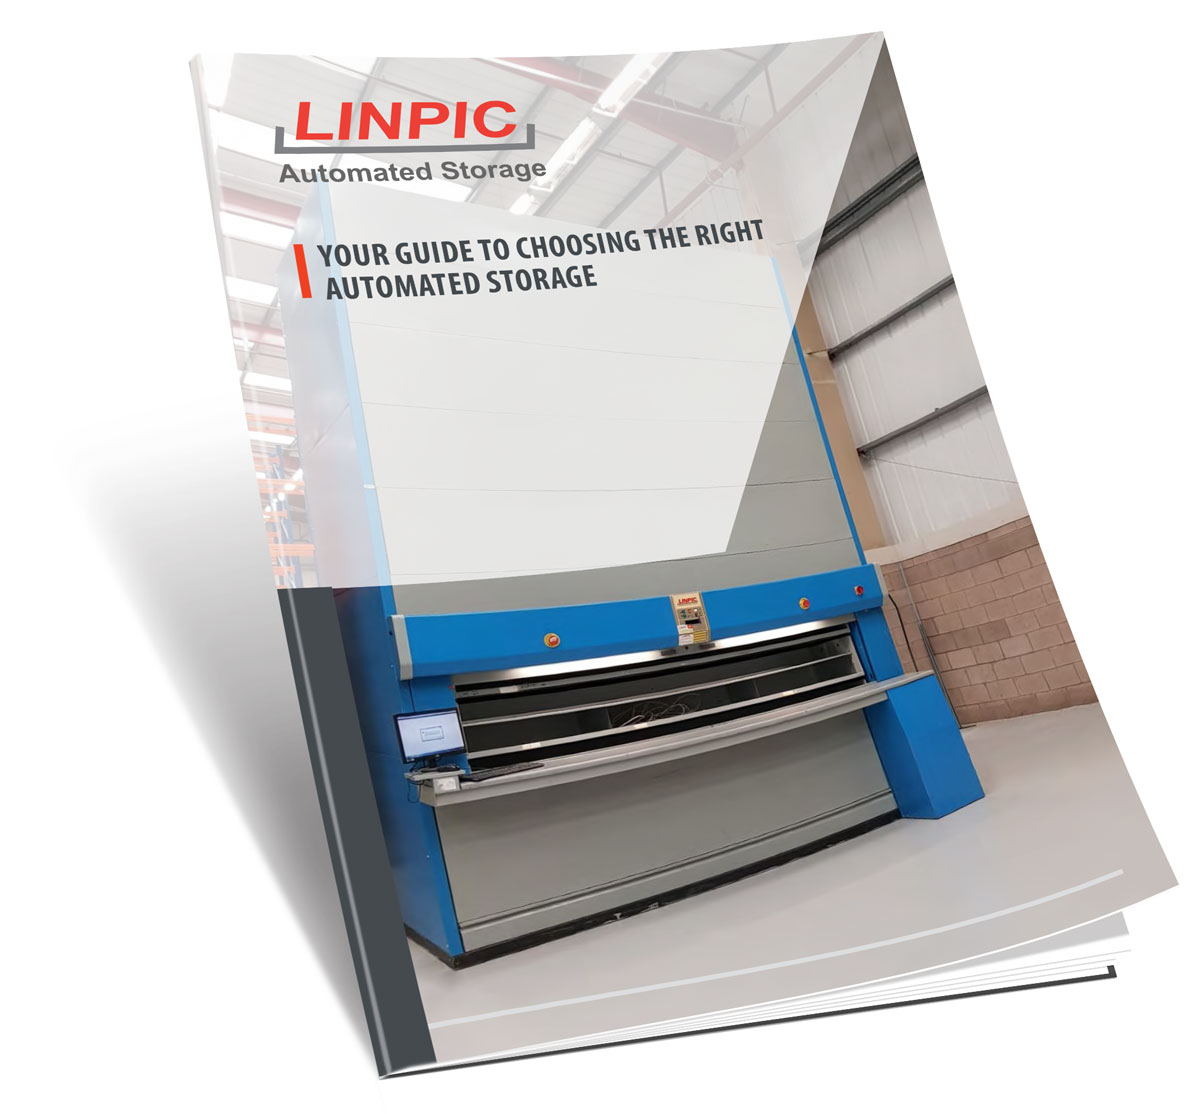 Get Your Free Guide to Choosing The Right Automated Storage